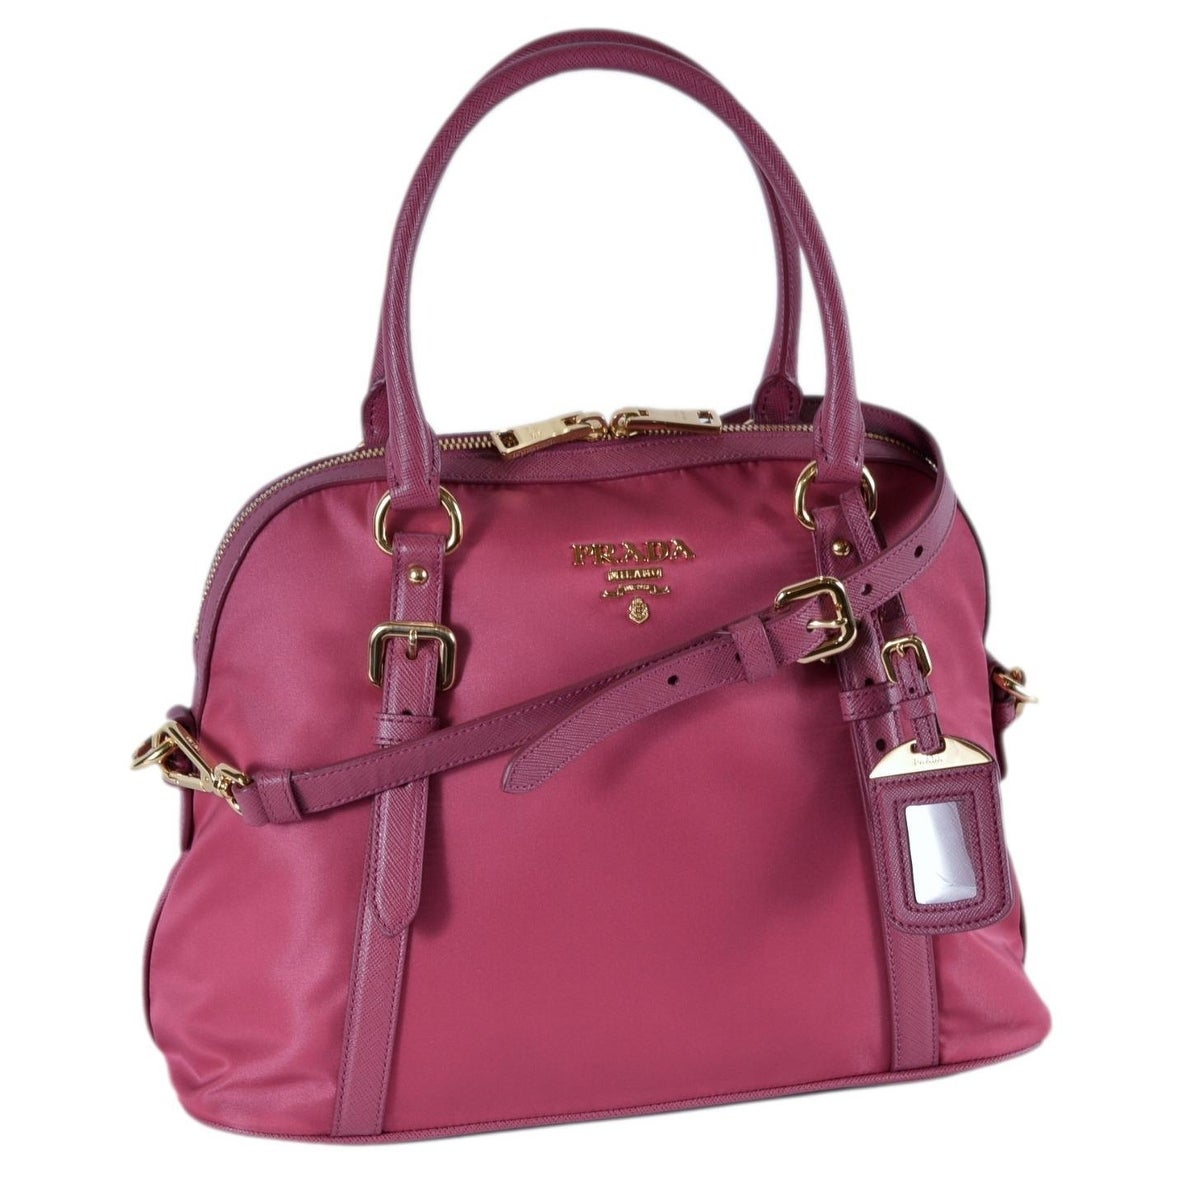 b8ad3b5f320d 123456789101112 250fe 9bc6f; spain shop prada 1bb013 tessuto ibisco pink  nylon bauletto satchel purse w strap on sale free